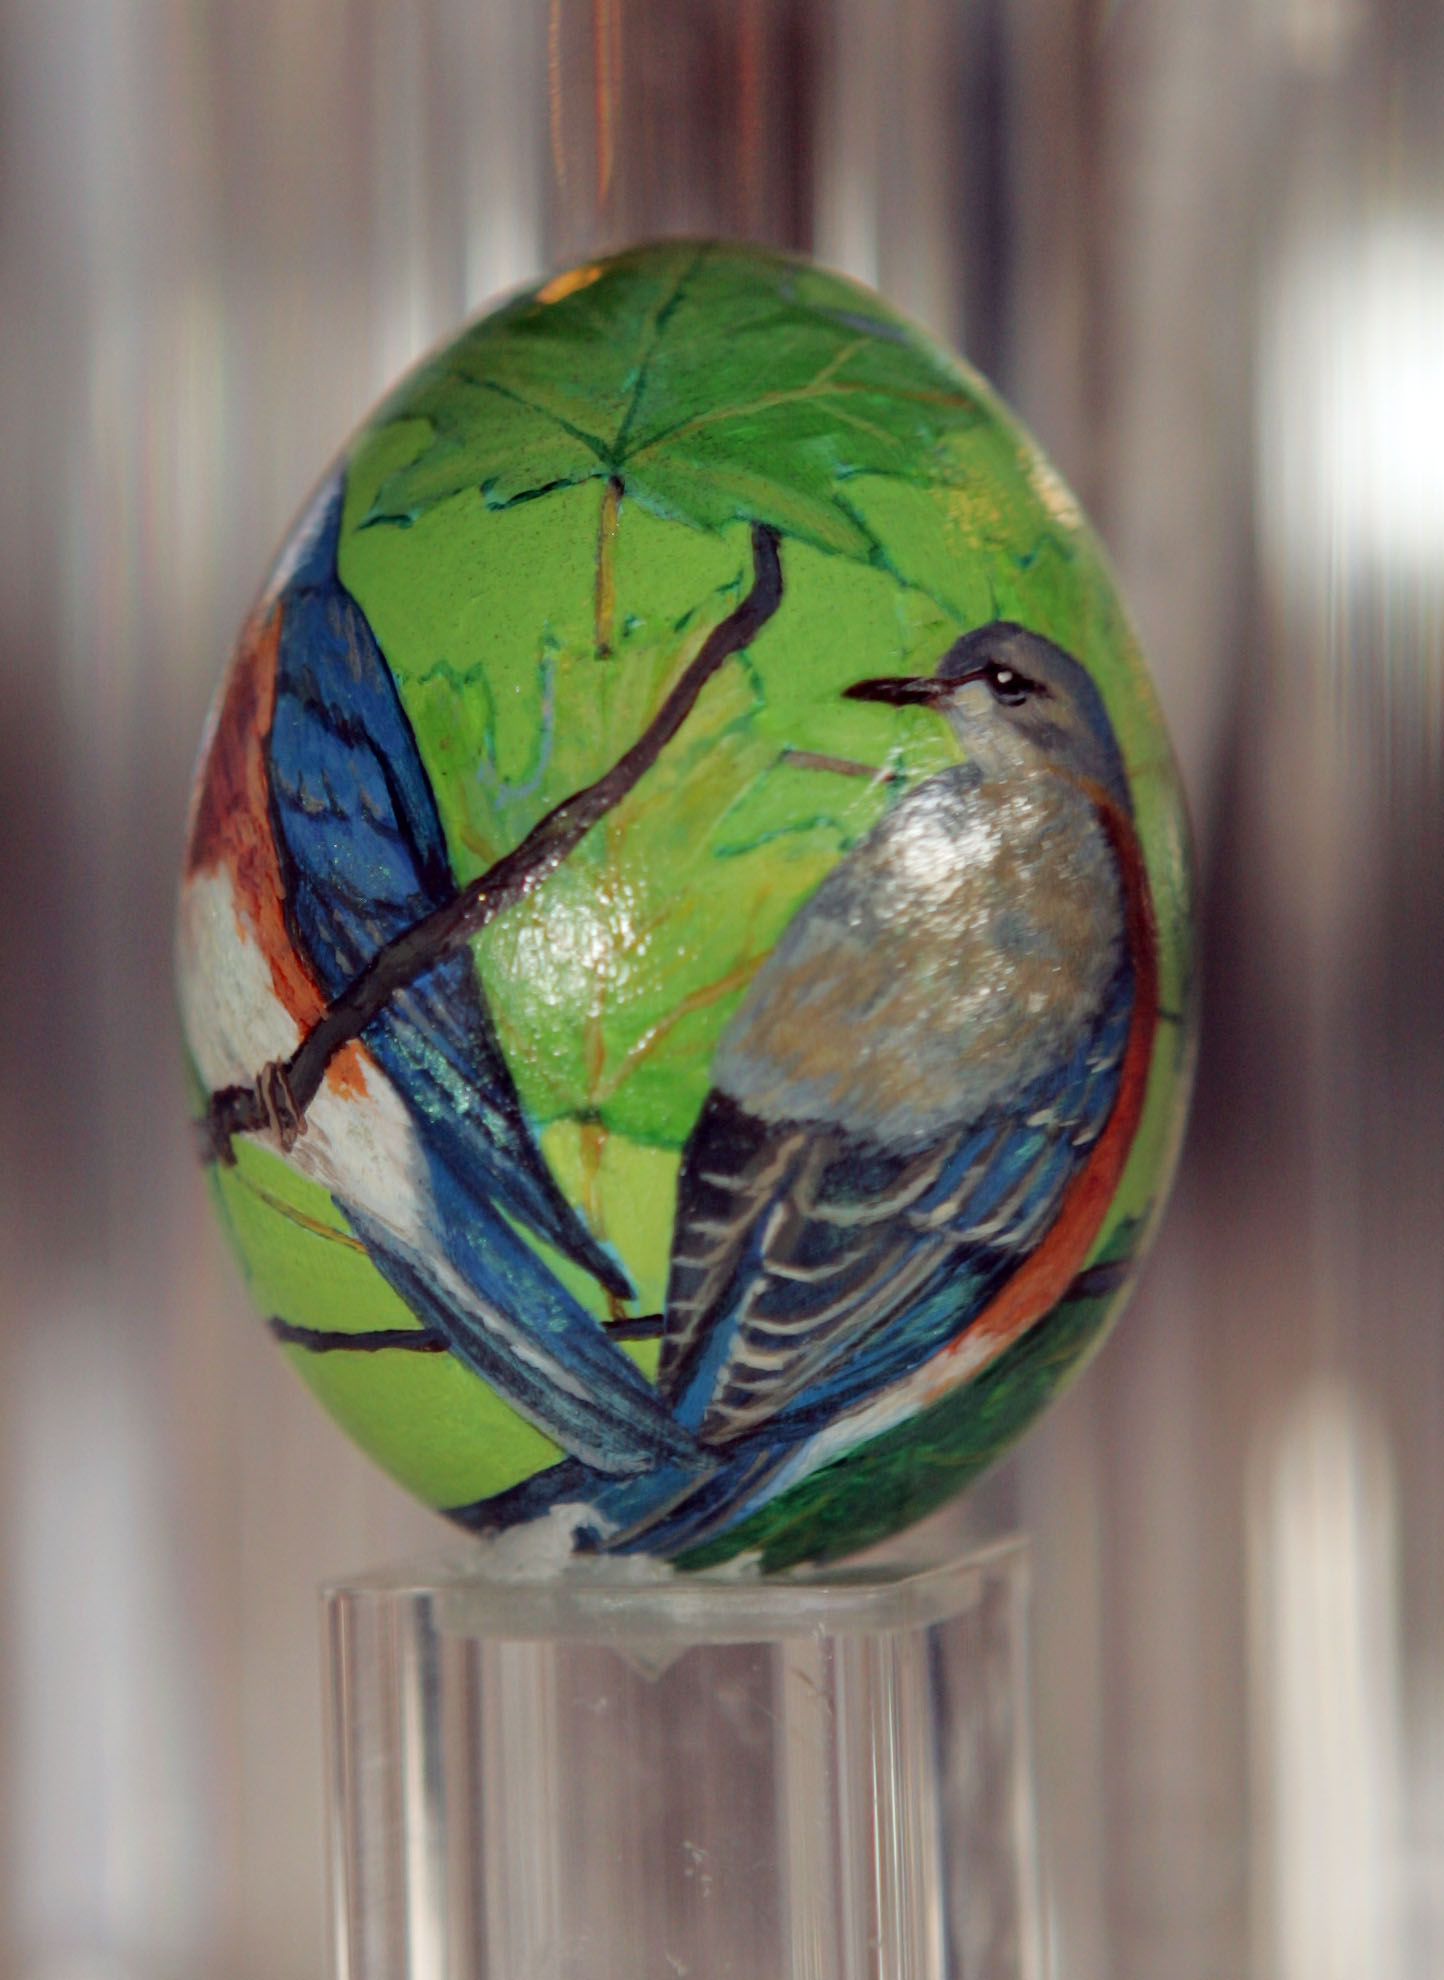 painted egg by Ms. Elizabeth Kolligs, Glen Cove, NY